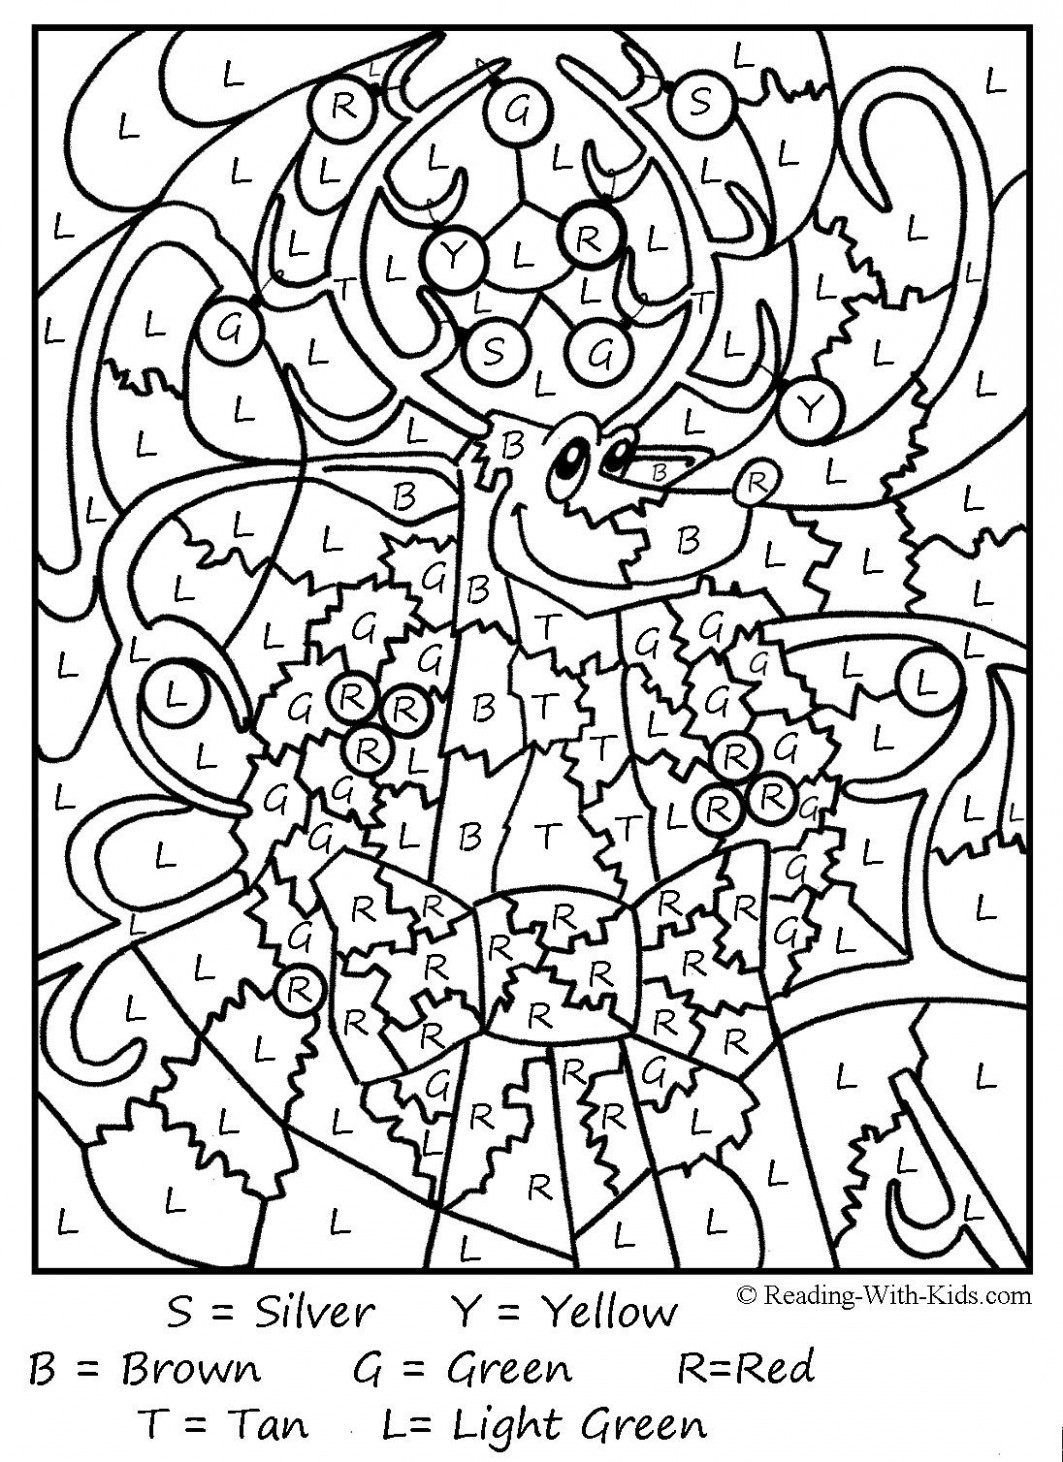 Christmas Color By Number Coloring Pages Printable | coloring pages ..